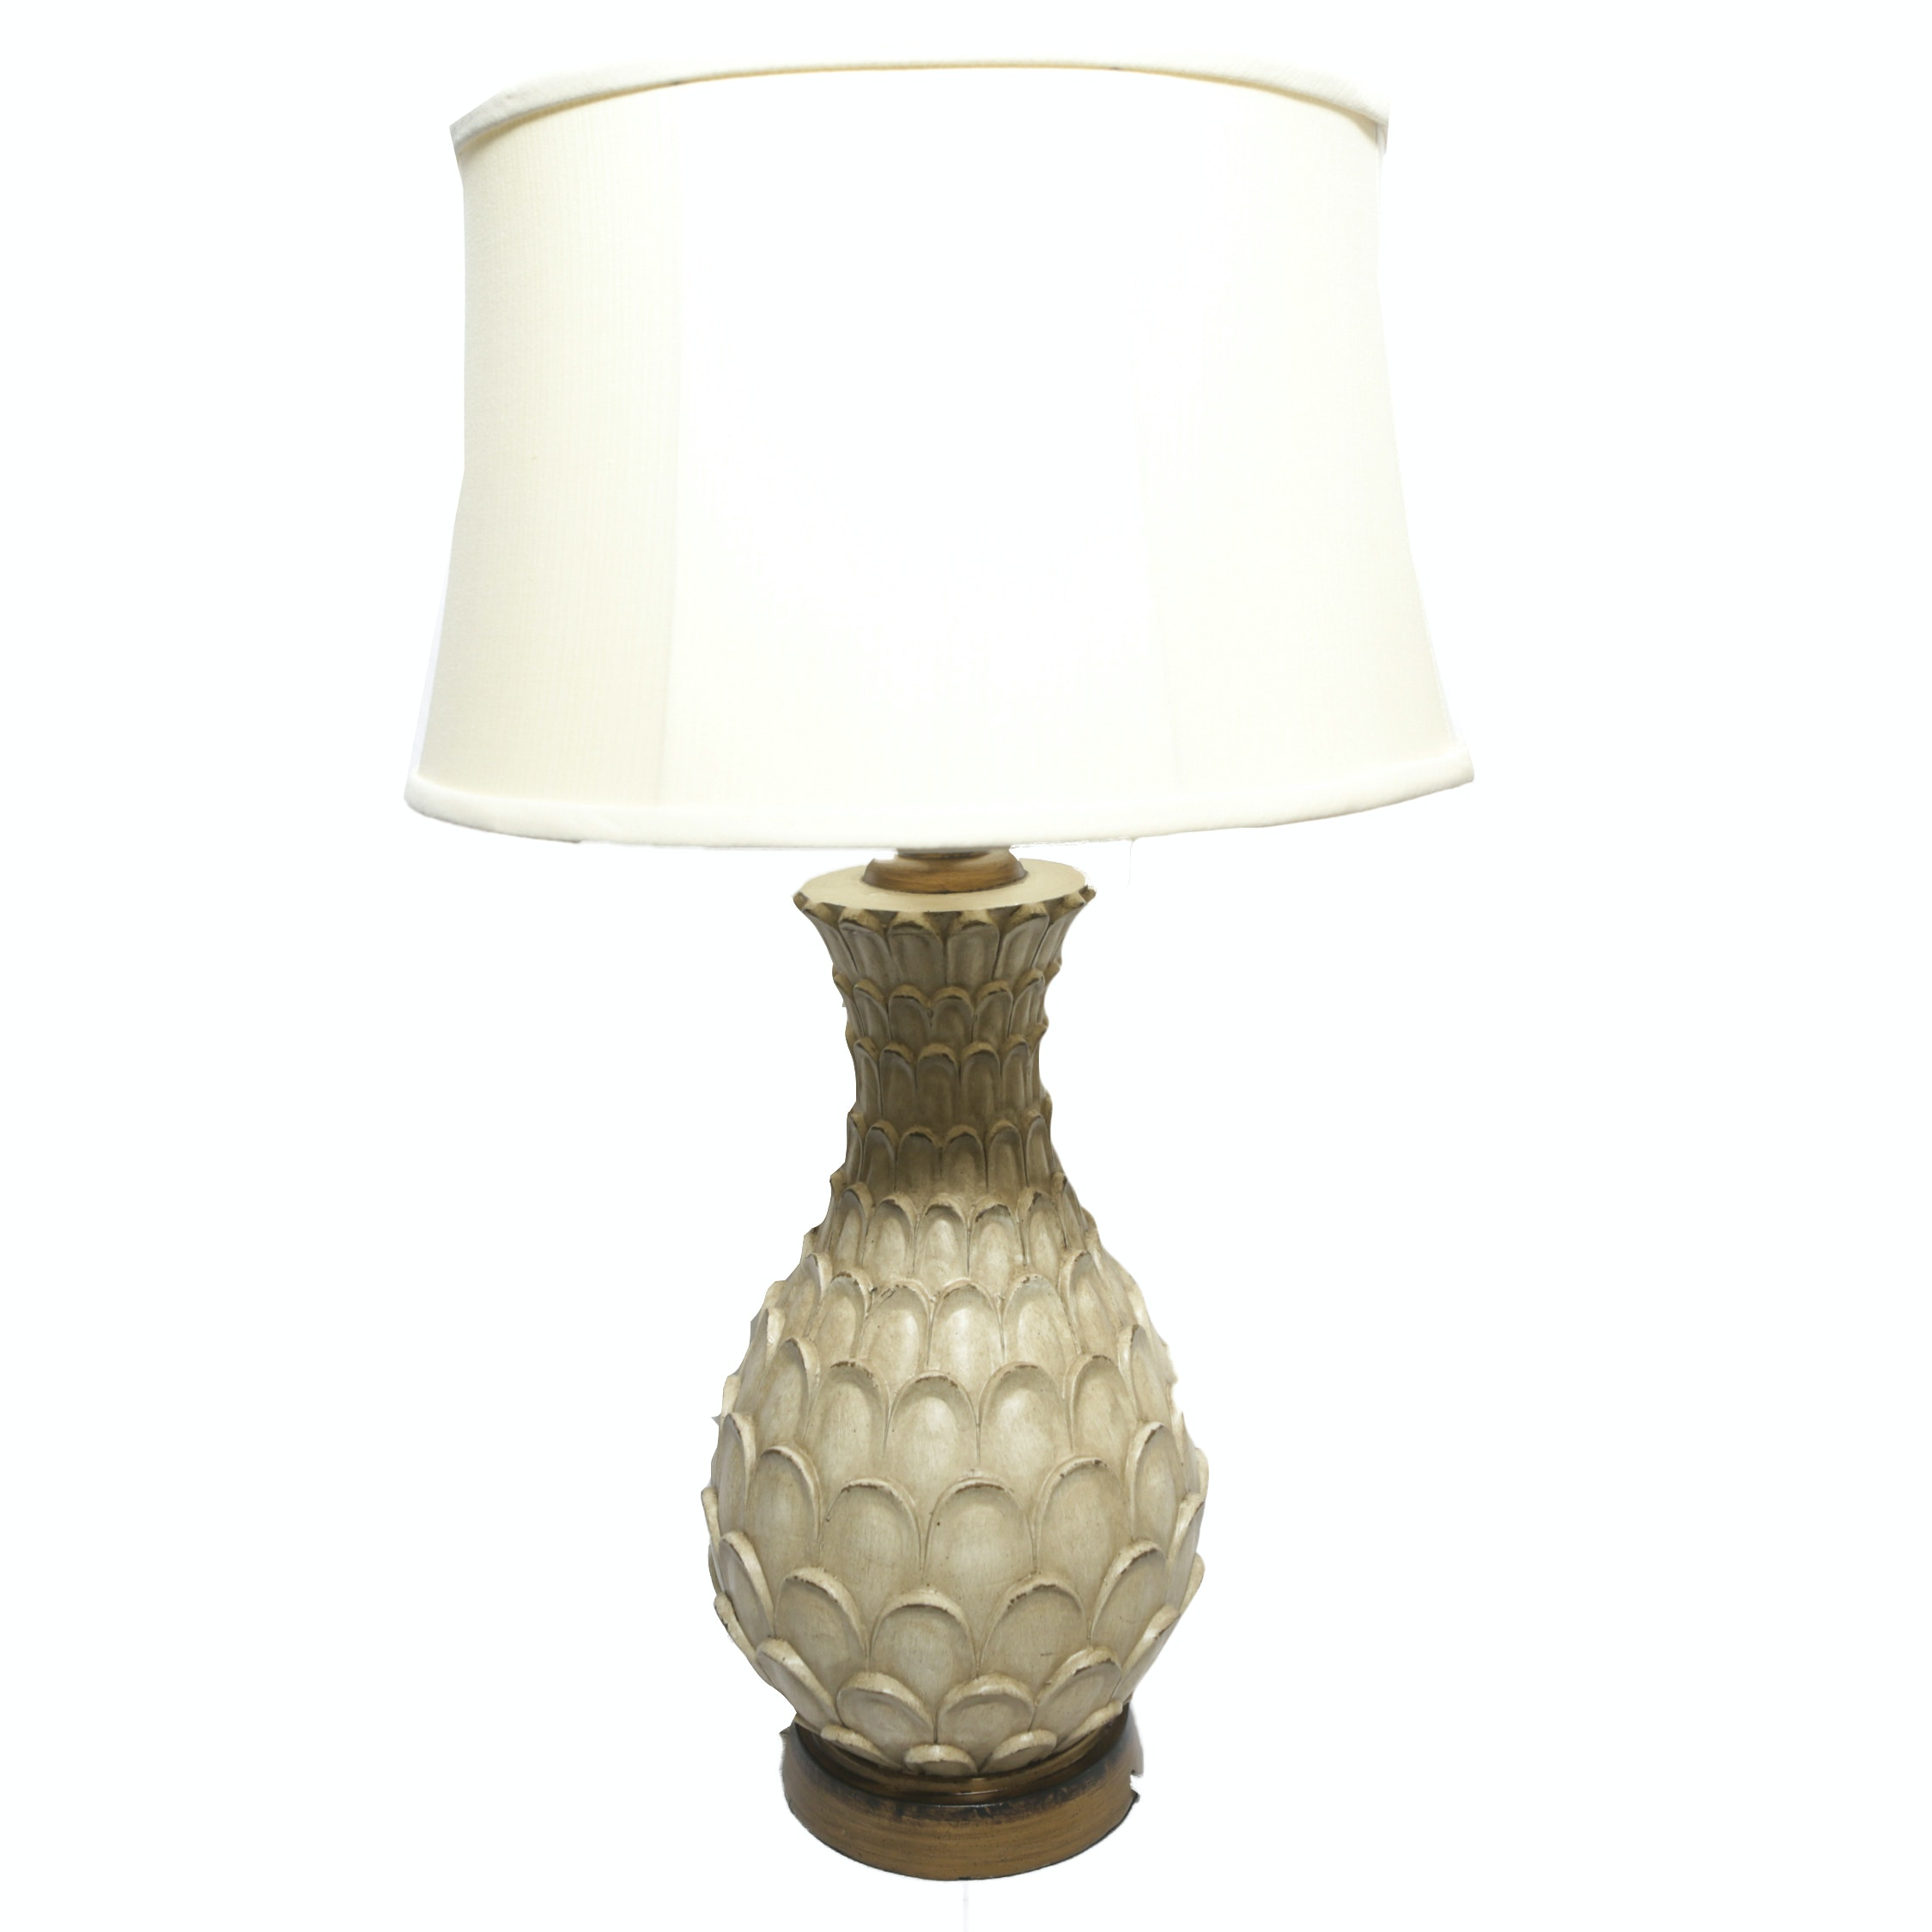 Petalled Tan Resin Table Lamp with Fabric Drum Shade